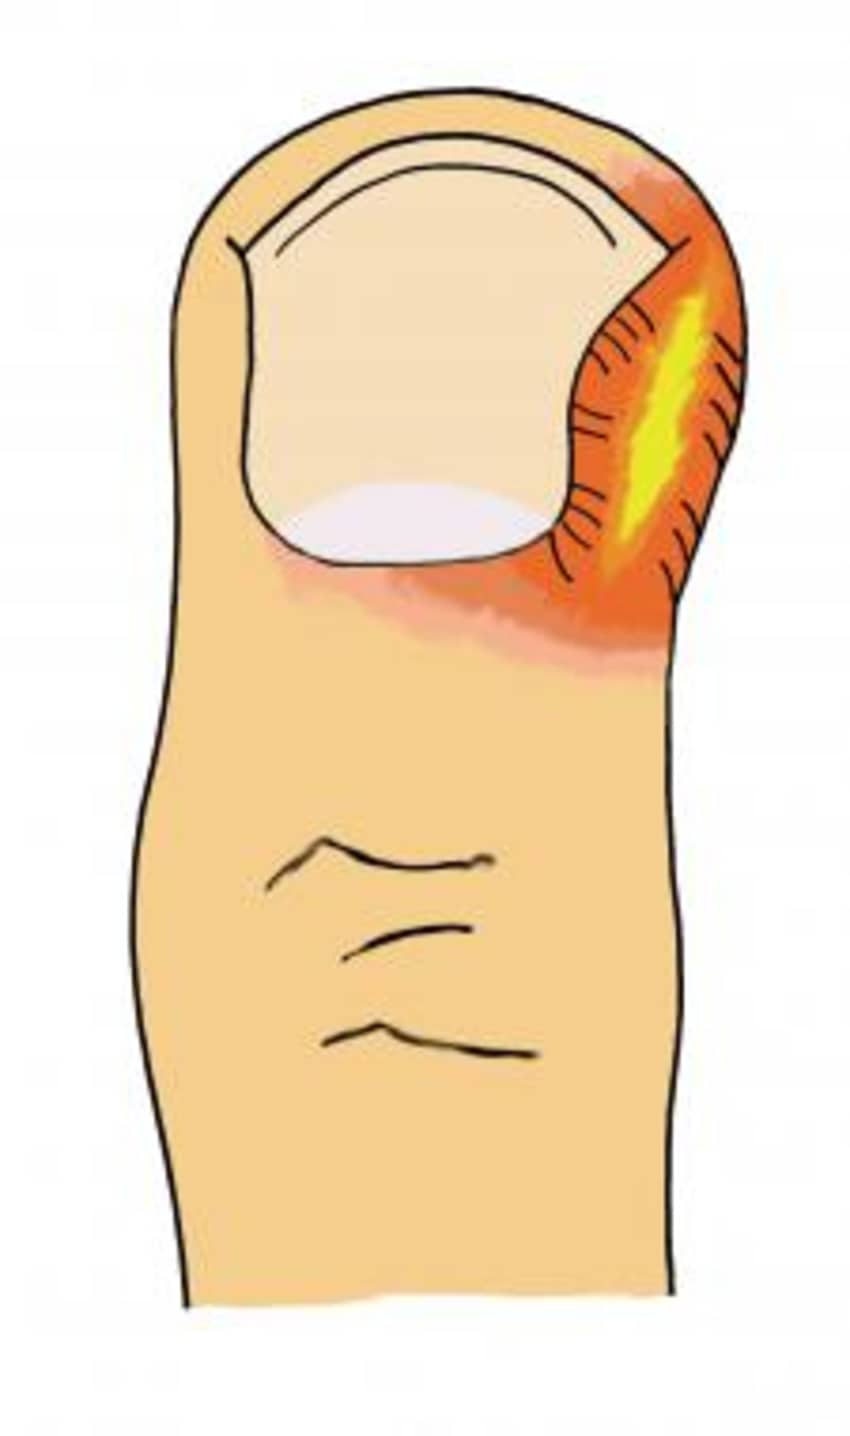 Nail Bed Infection - By Dr. Gaurav Bansal   Lybrate